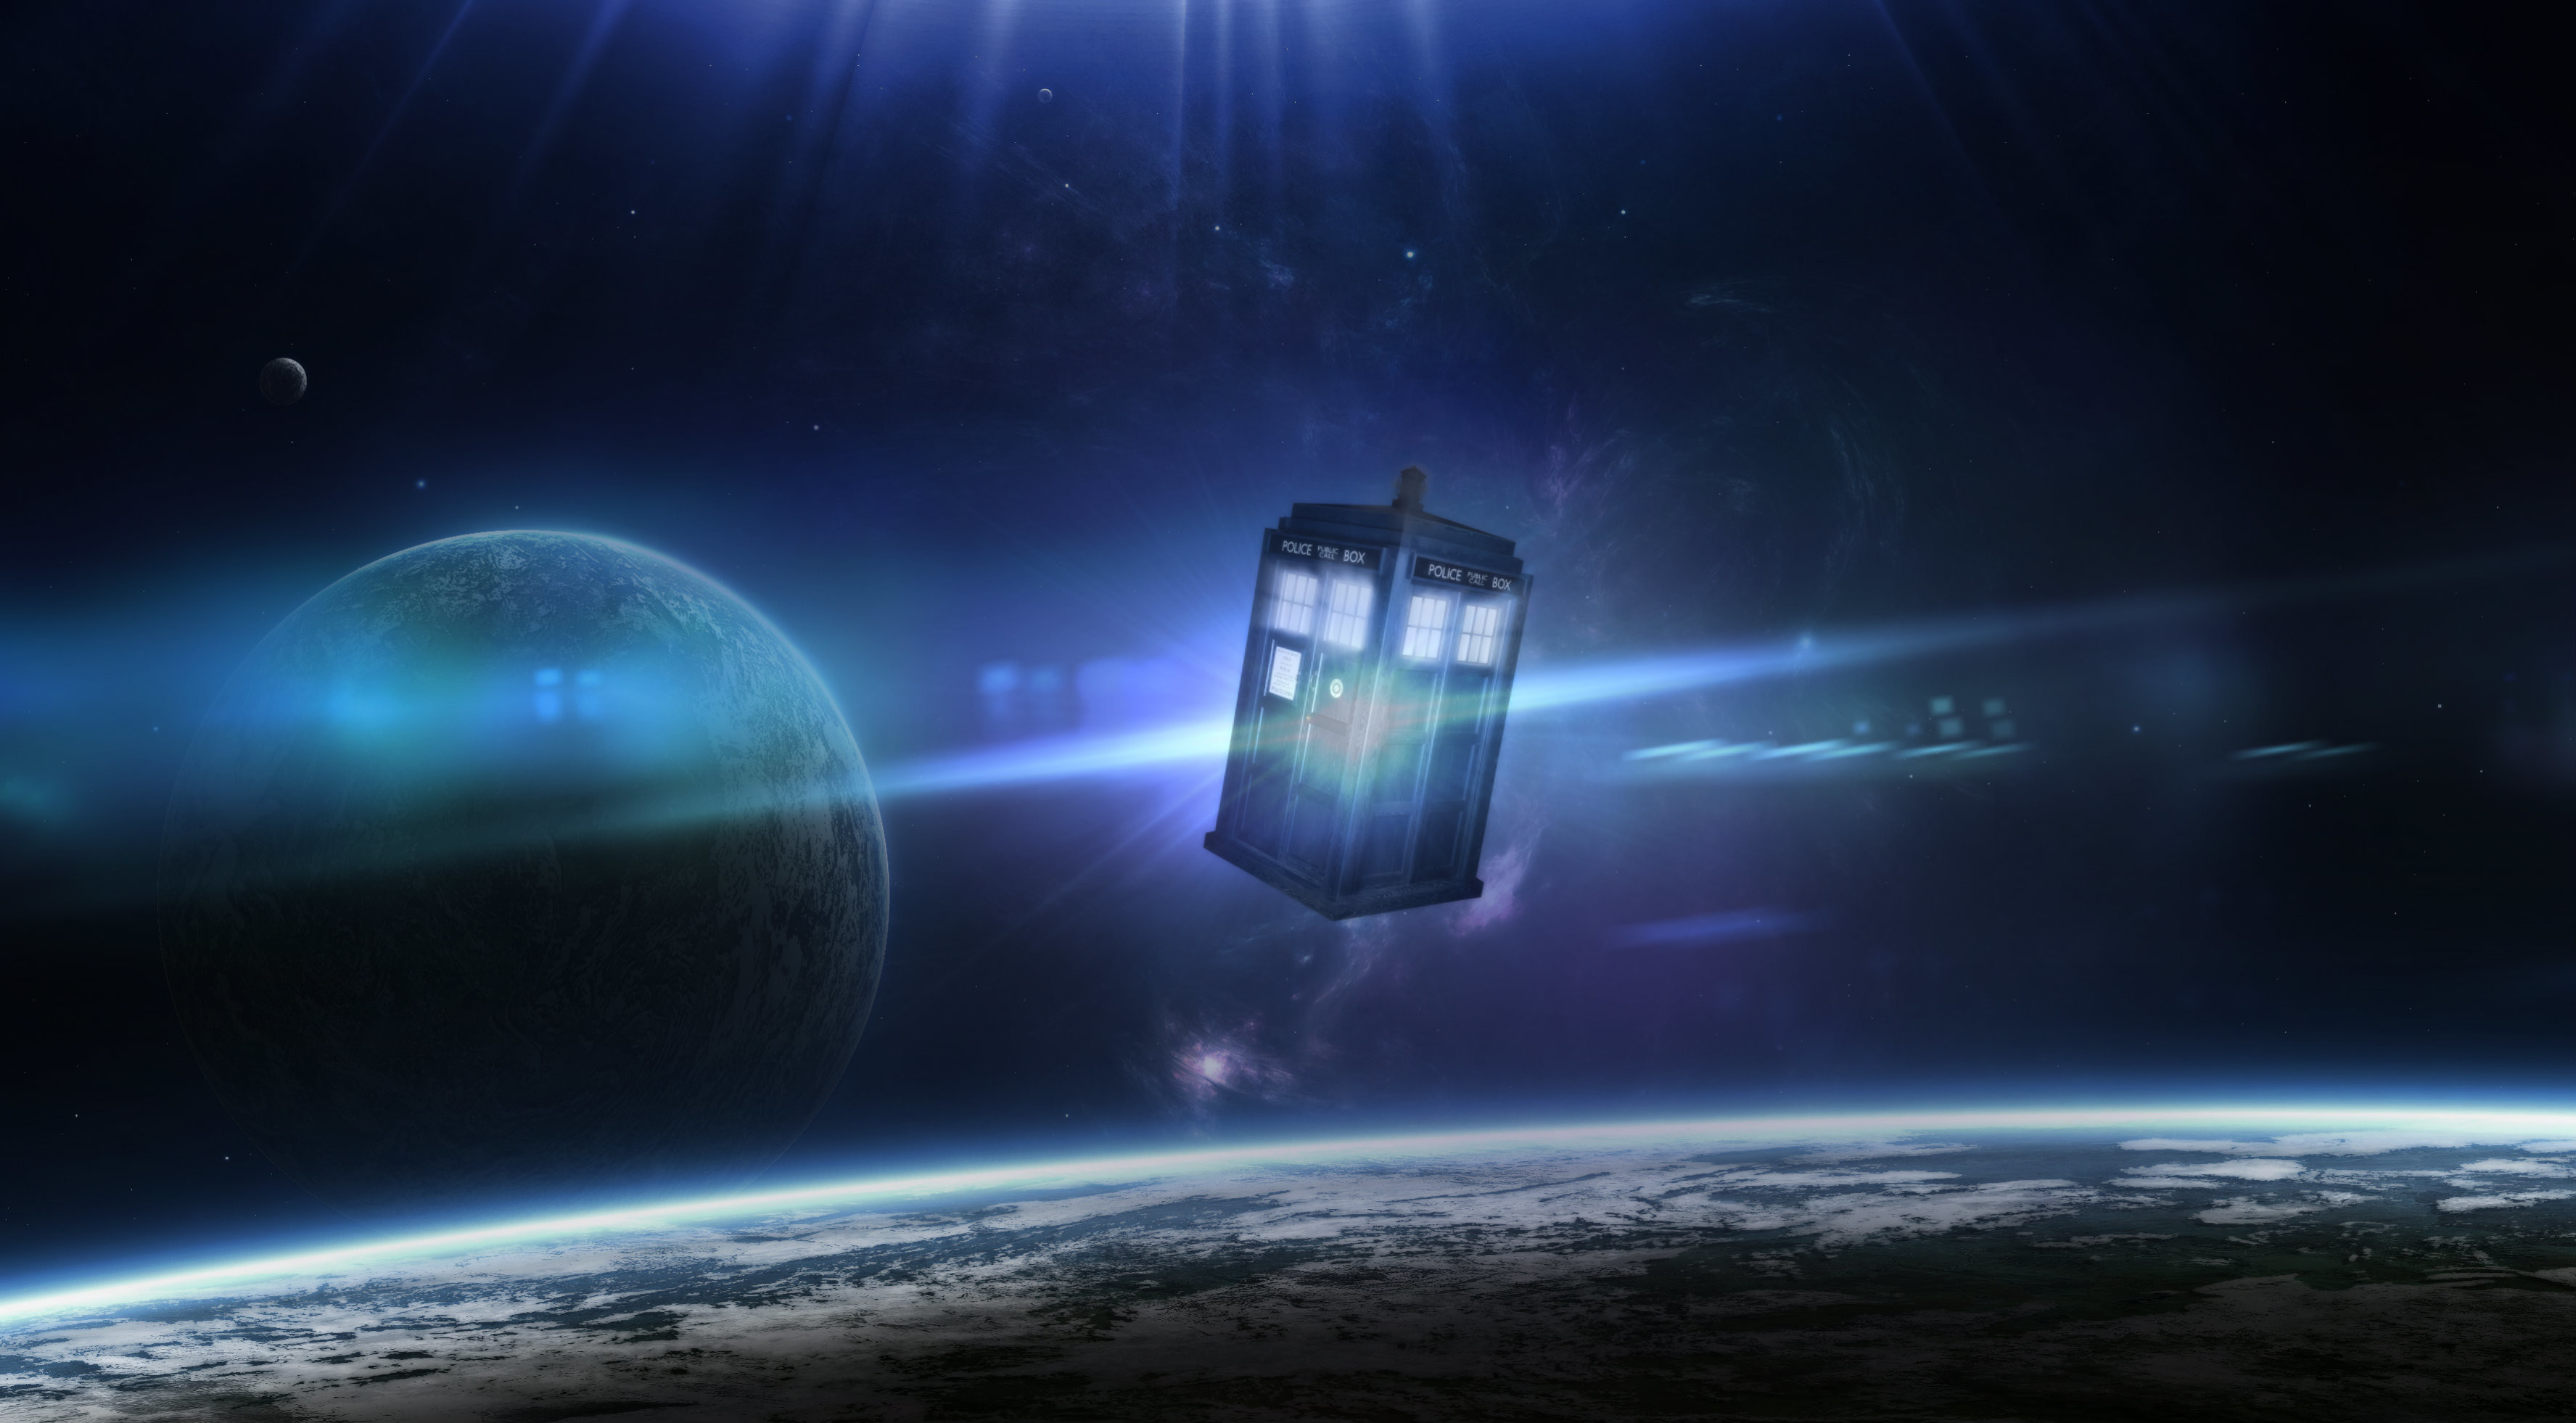 Doctor who wallpaper 1366x768 wallpapertag - Dr who wallpaper ...